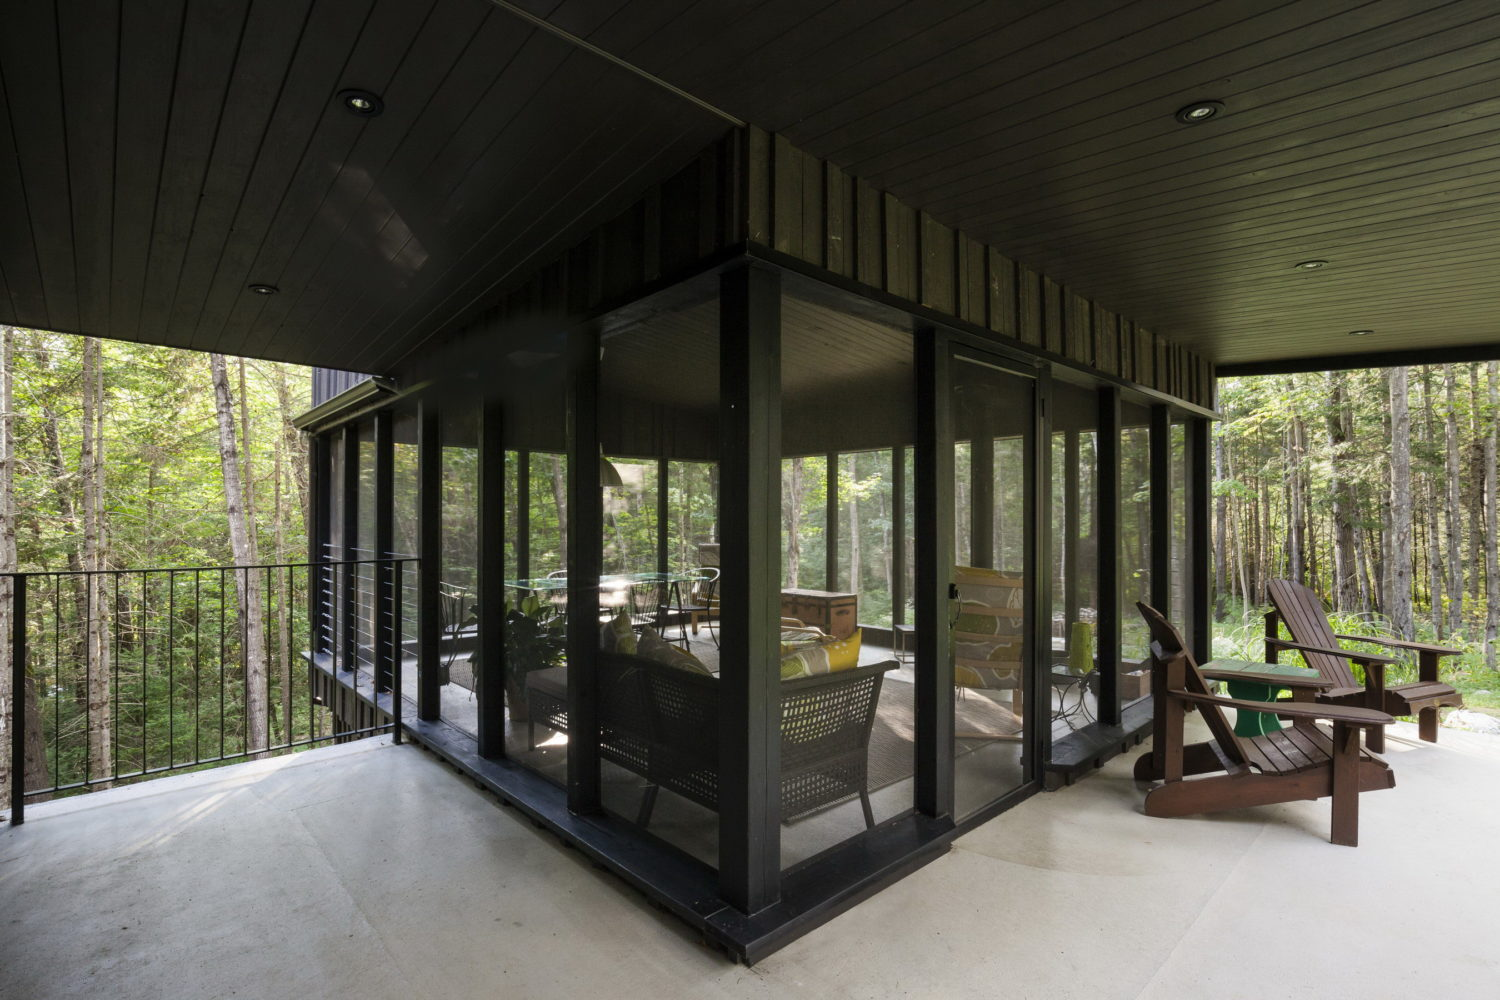 La Cache | Forest house by Nathalie Thibodeau Architecte